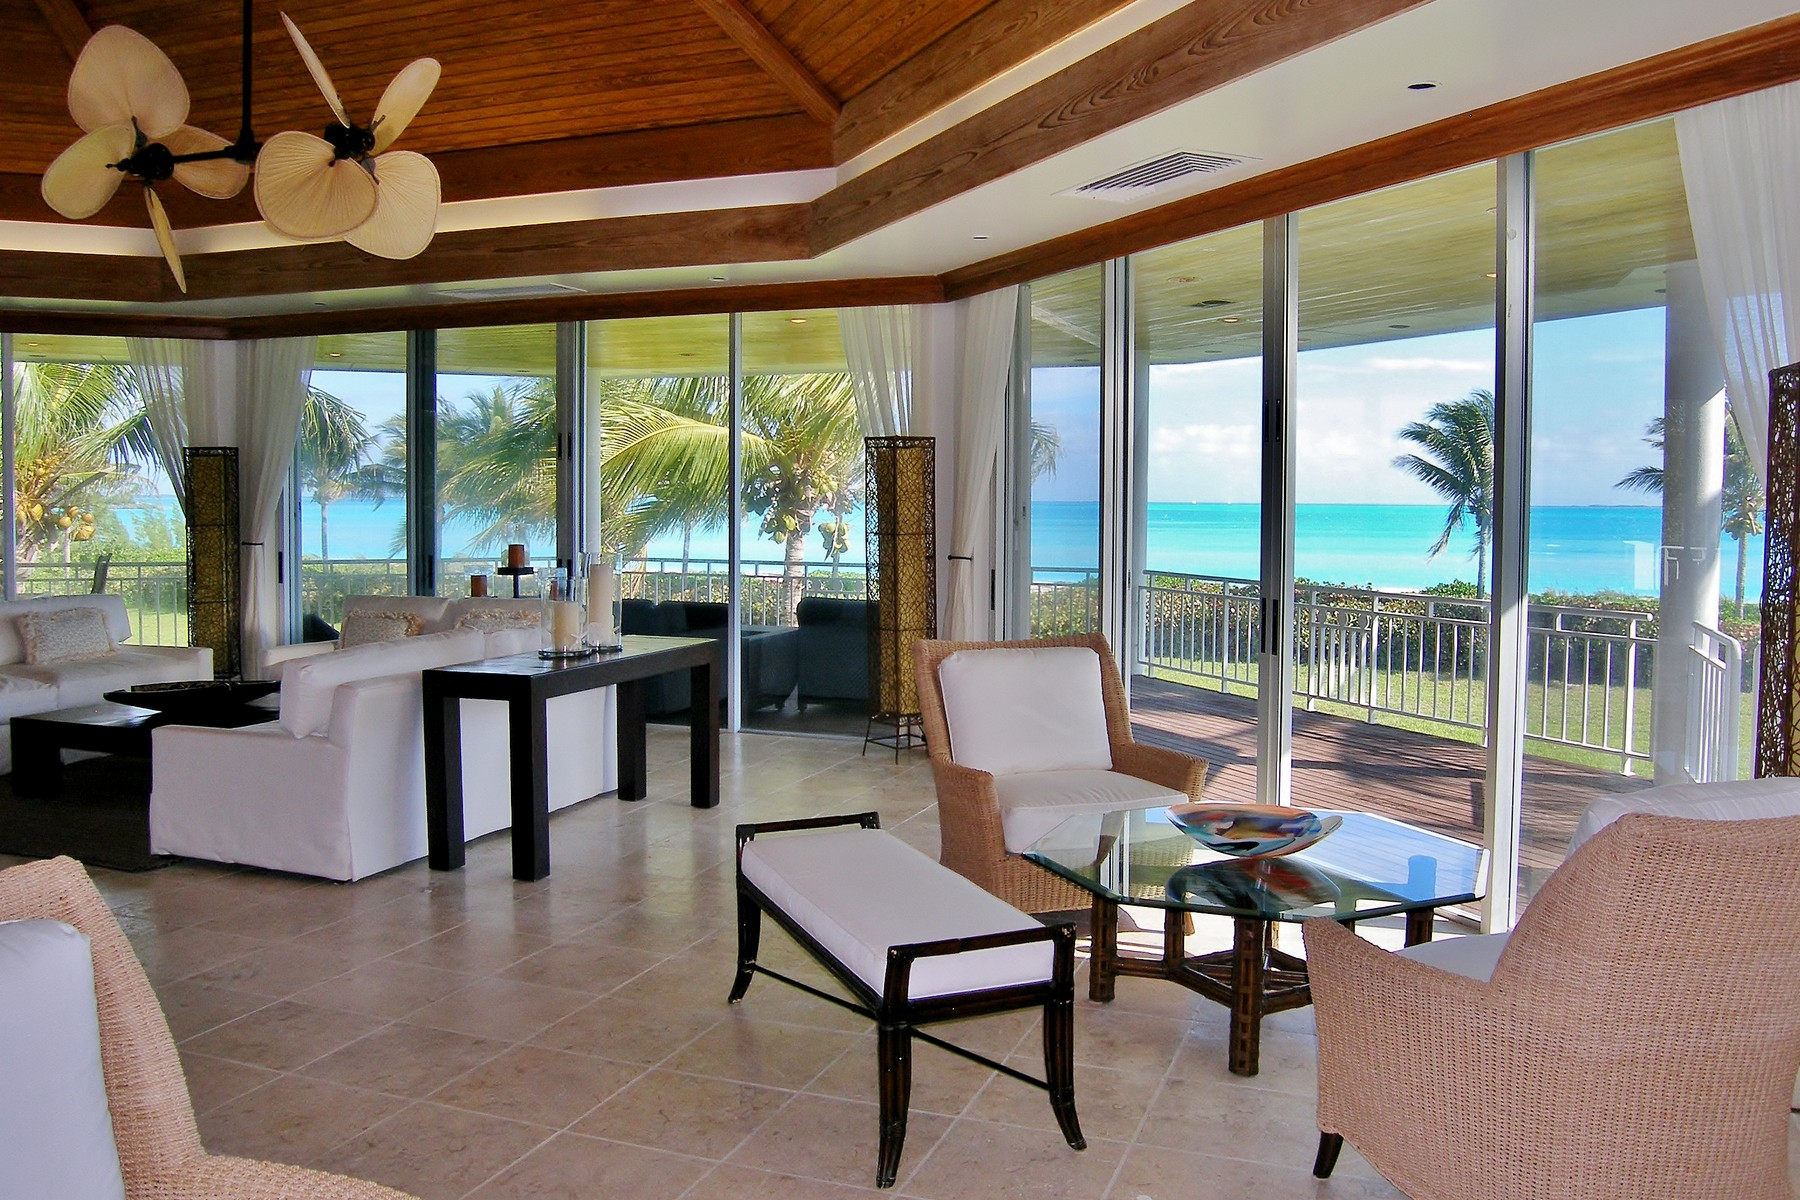 Additional photo for property listing at Serenity Treasure Cay, Abaco Bahamas